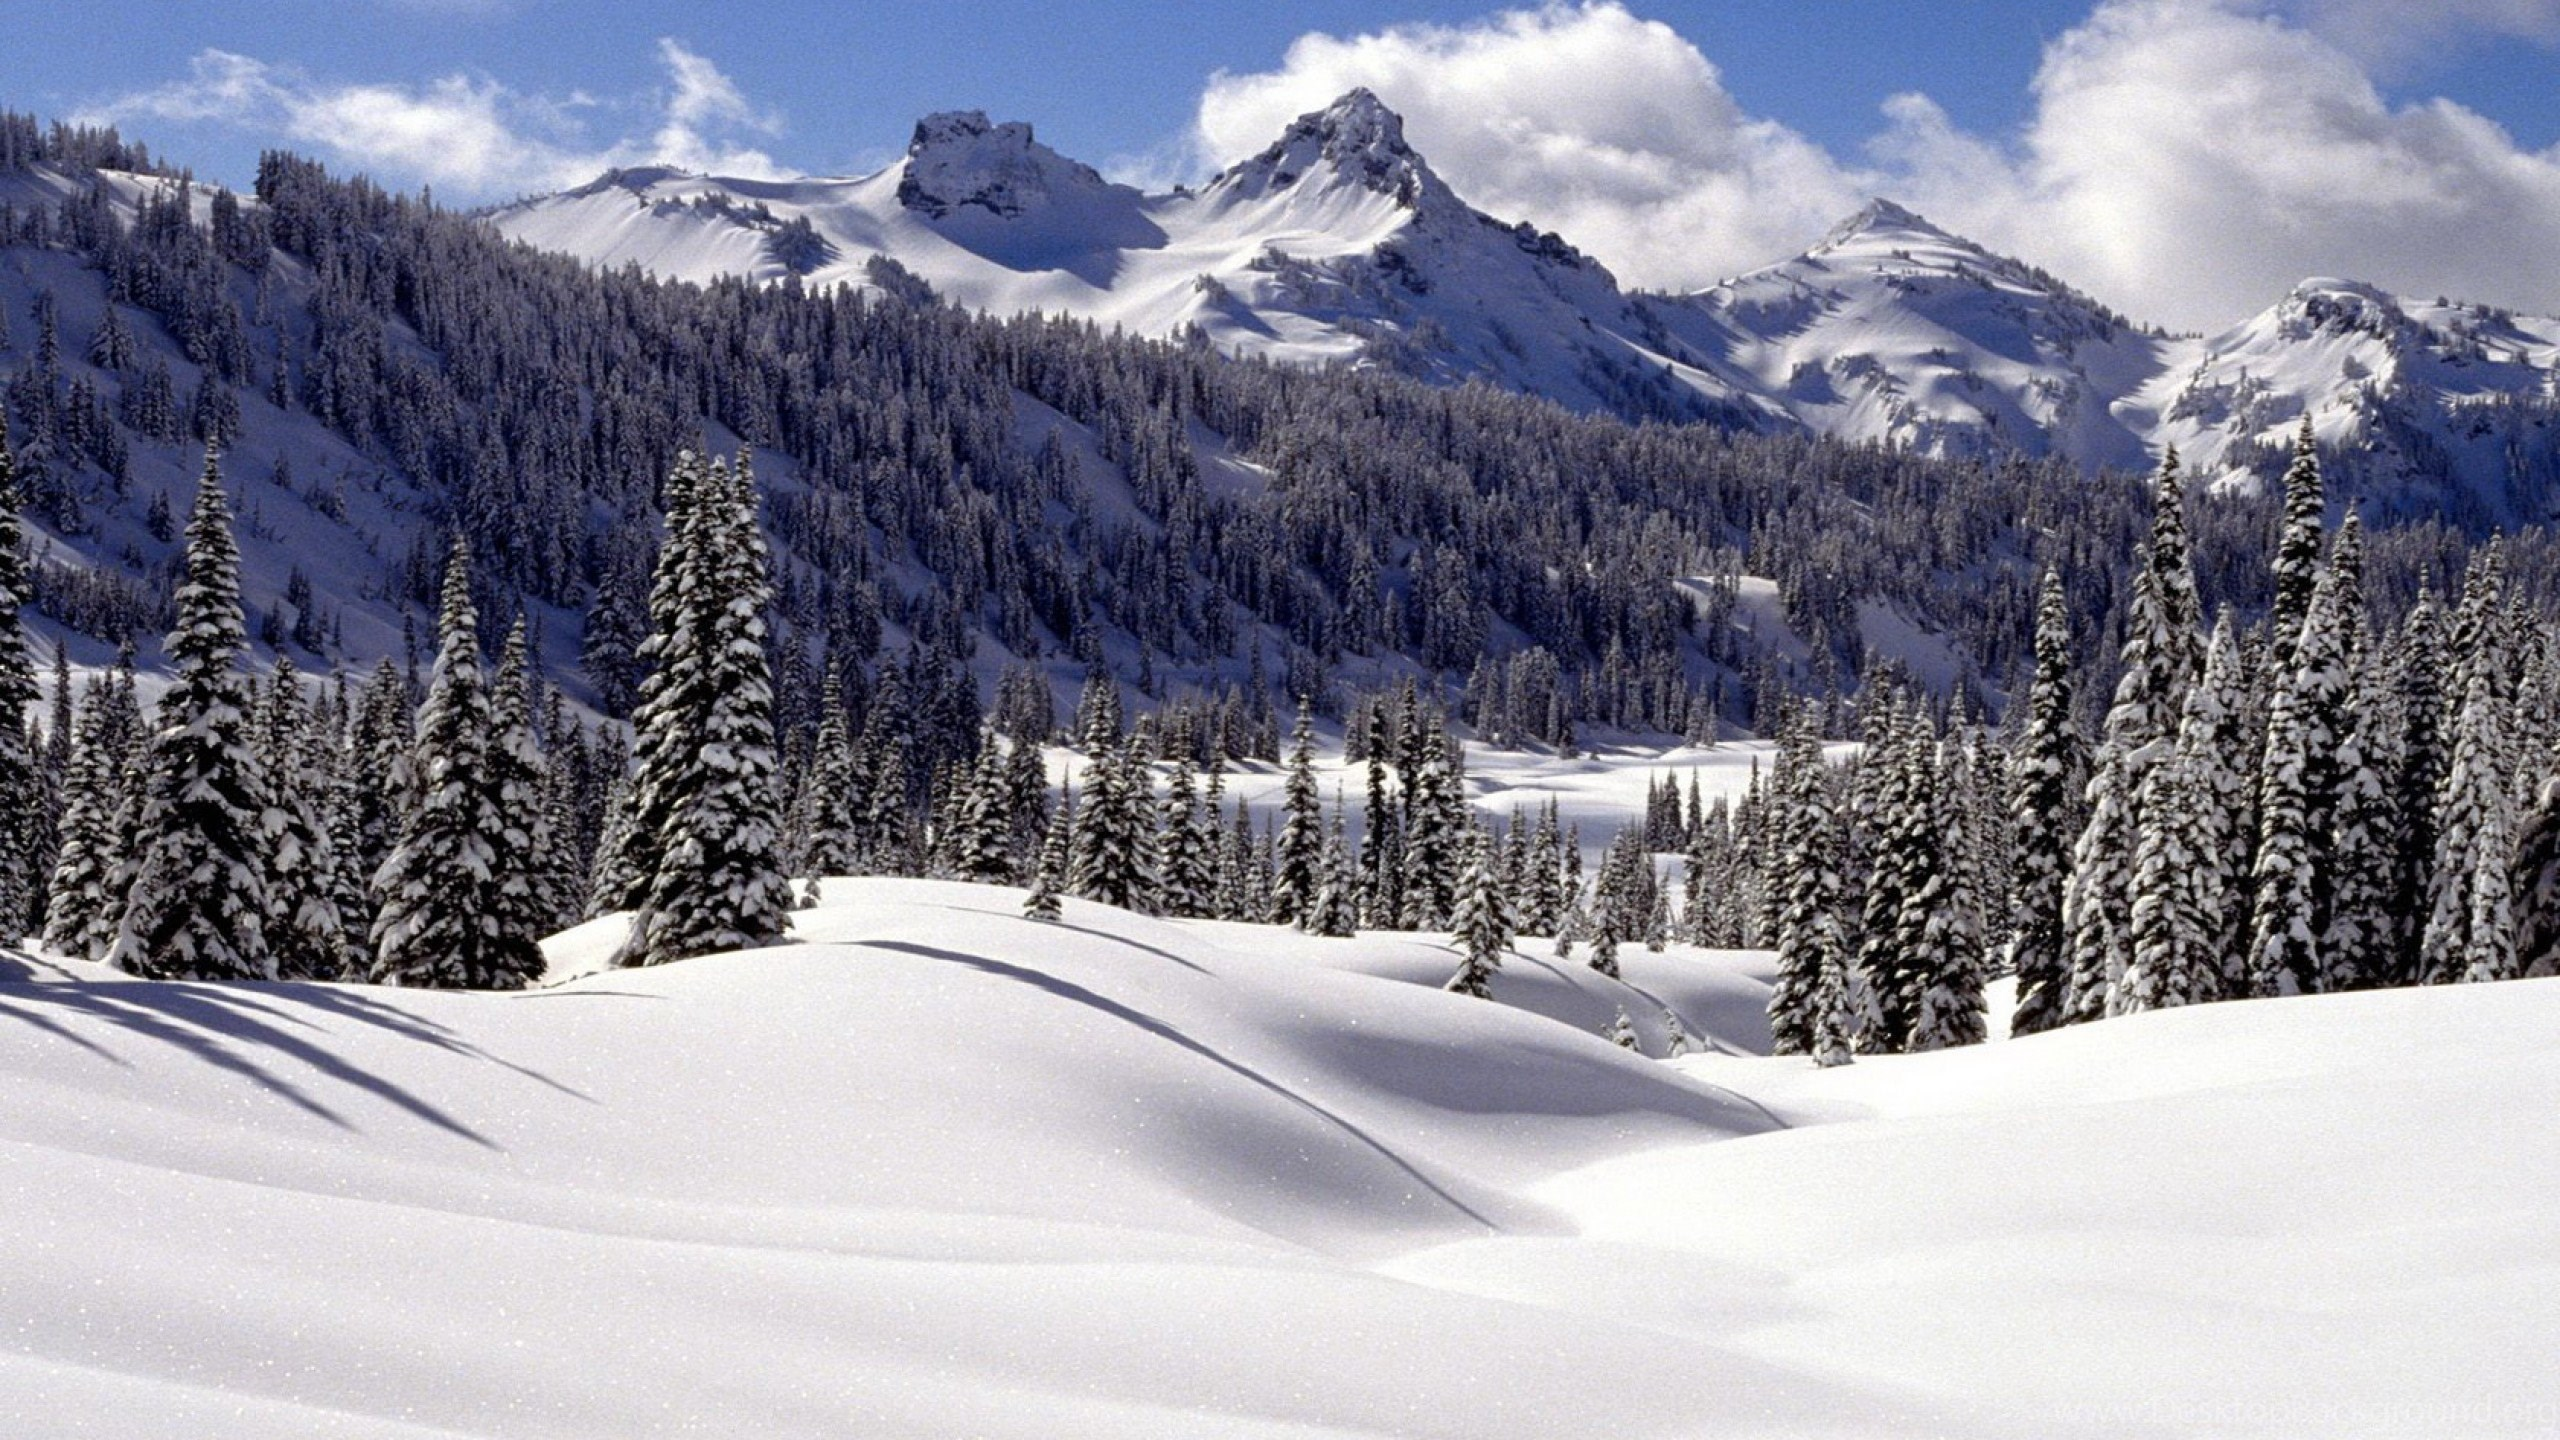 Winter Scenes, Cool, 2560x1440 HD Wallpapers And FREE Stock Photo